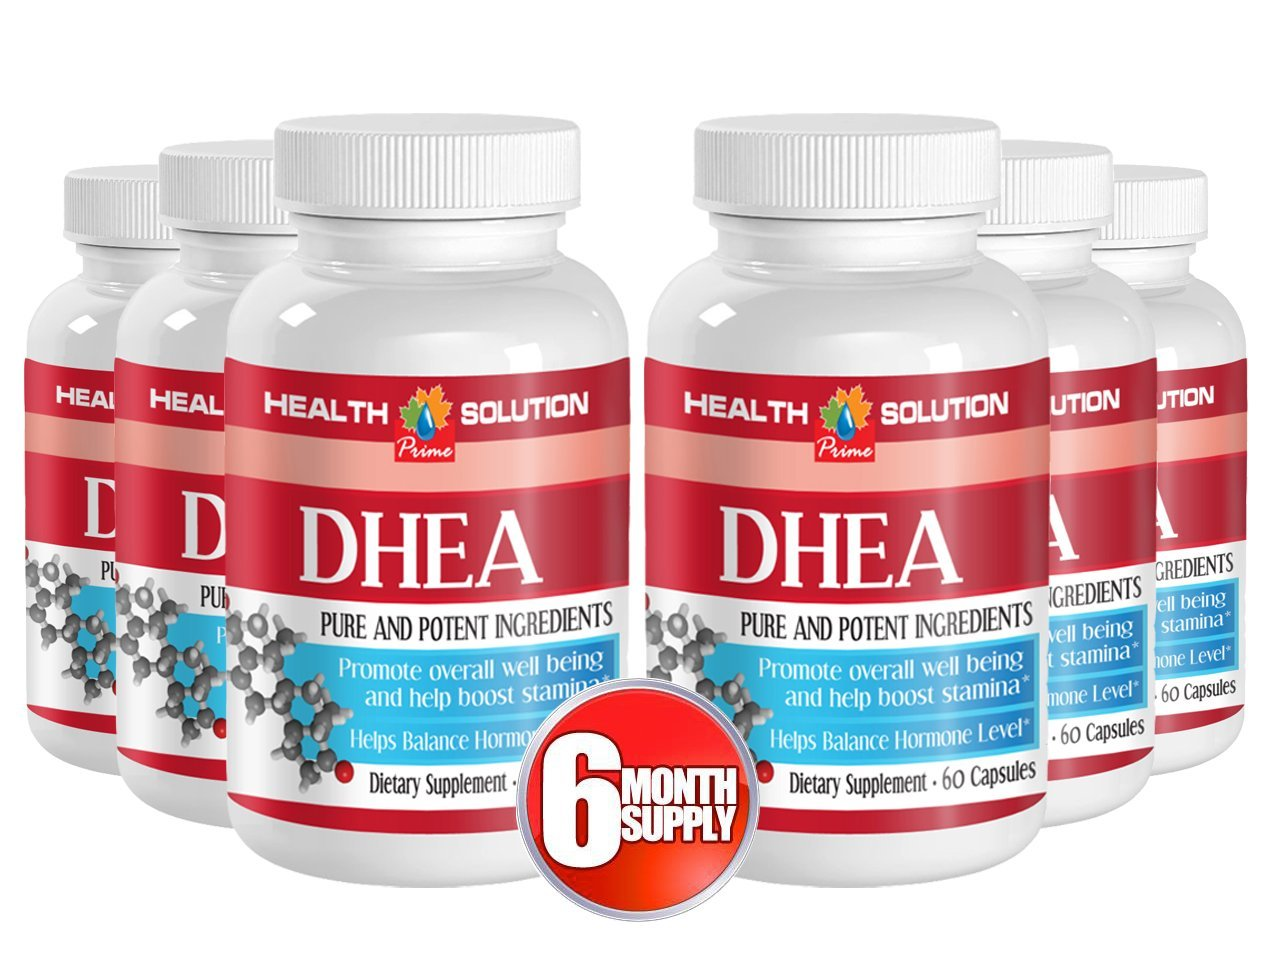 Dhea vegetarian - DHEA 50 mg - muscle building supplement (6 bottles)